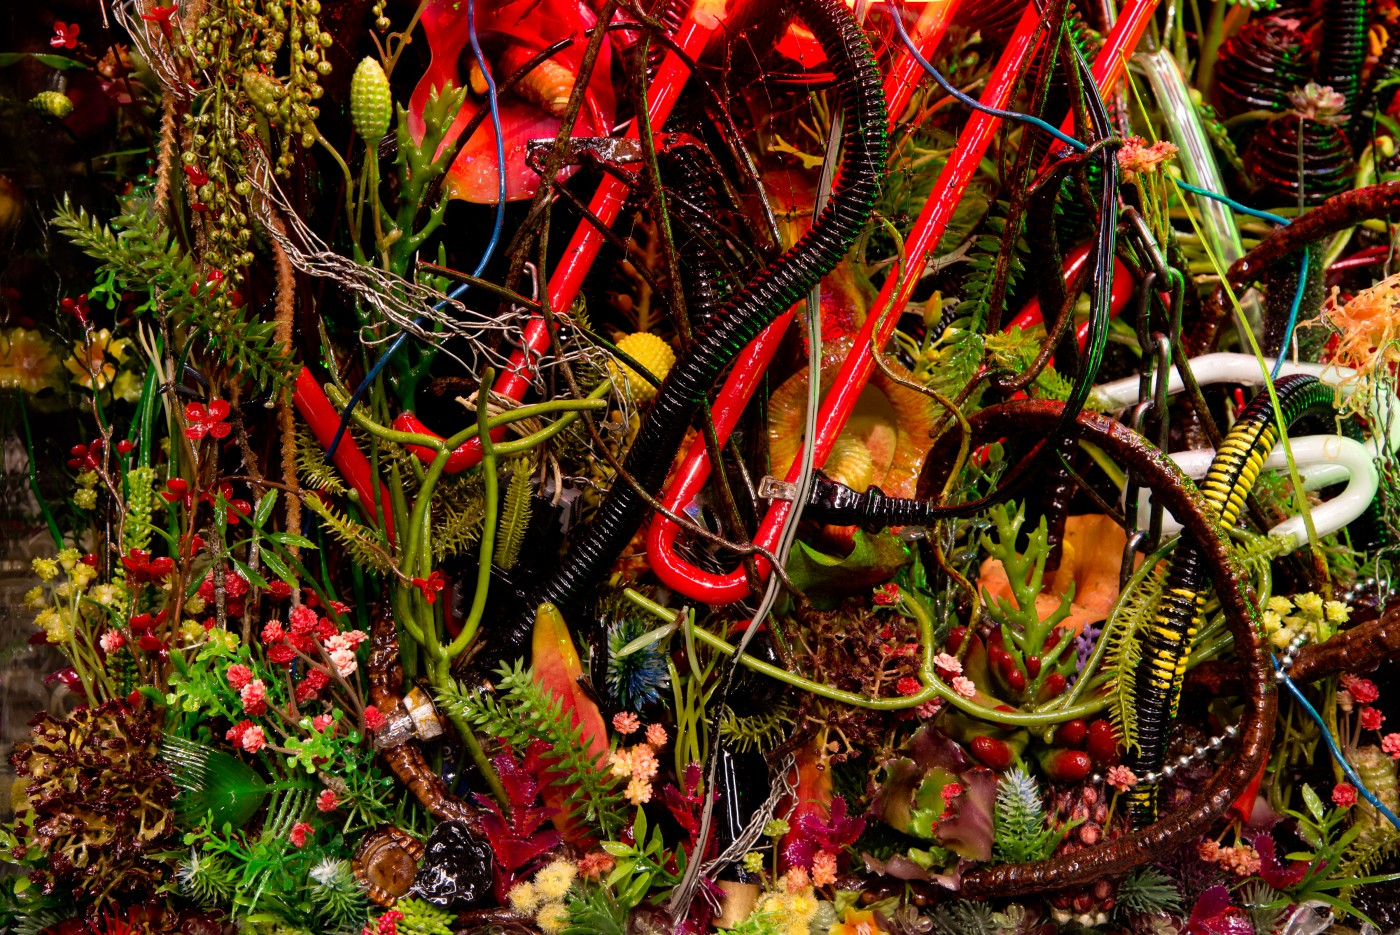 NATURE THEATER OF VIOLENT SUCCESSION  The Extinction of Neon 2</I>, 2015 (detail) Acrylic terrarium, modeled landscape, used and broken neon signs, plastic flora, gallows structure, automotive detritus, steel chains, GTO wires, found objects, insect and animal matter, polymer resin, custom aluminum stand  167.6 x 106.7 x 61 cm / 66 x 42 x 24 in  MAX HOOPER SCHNEIDER